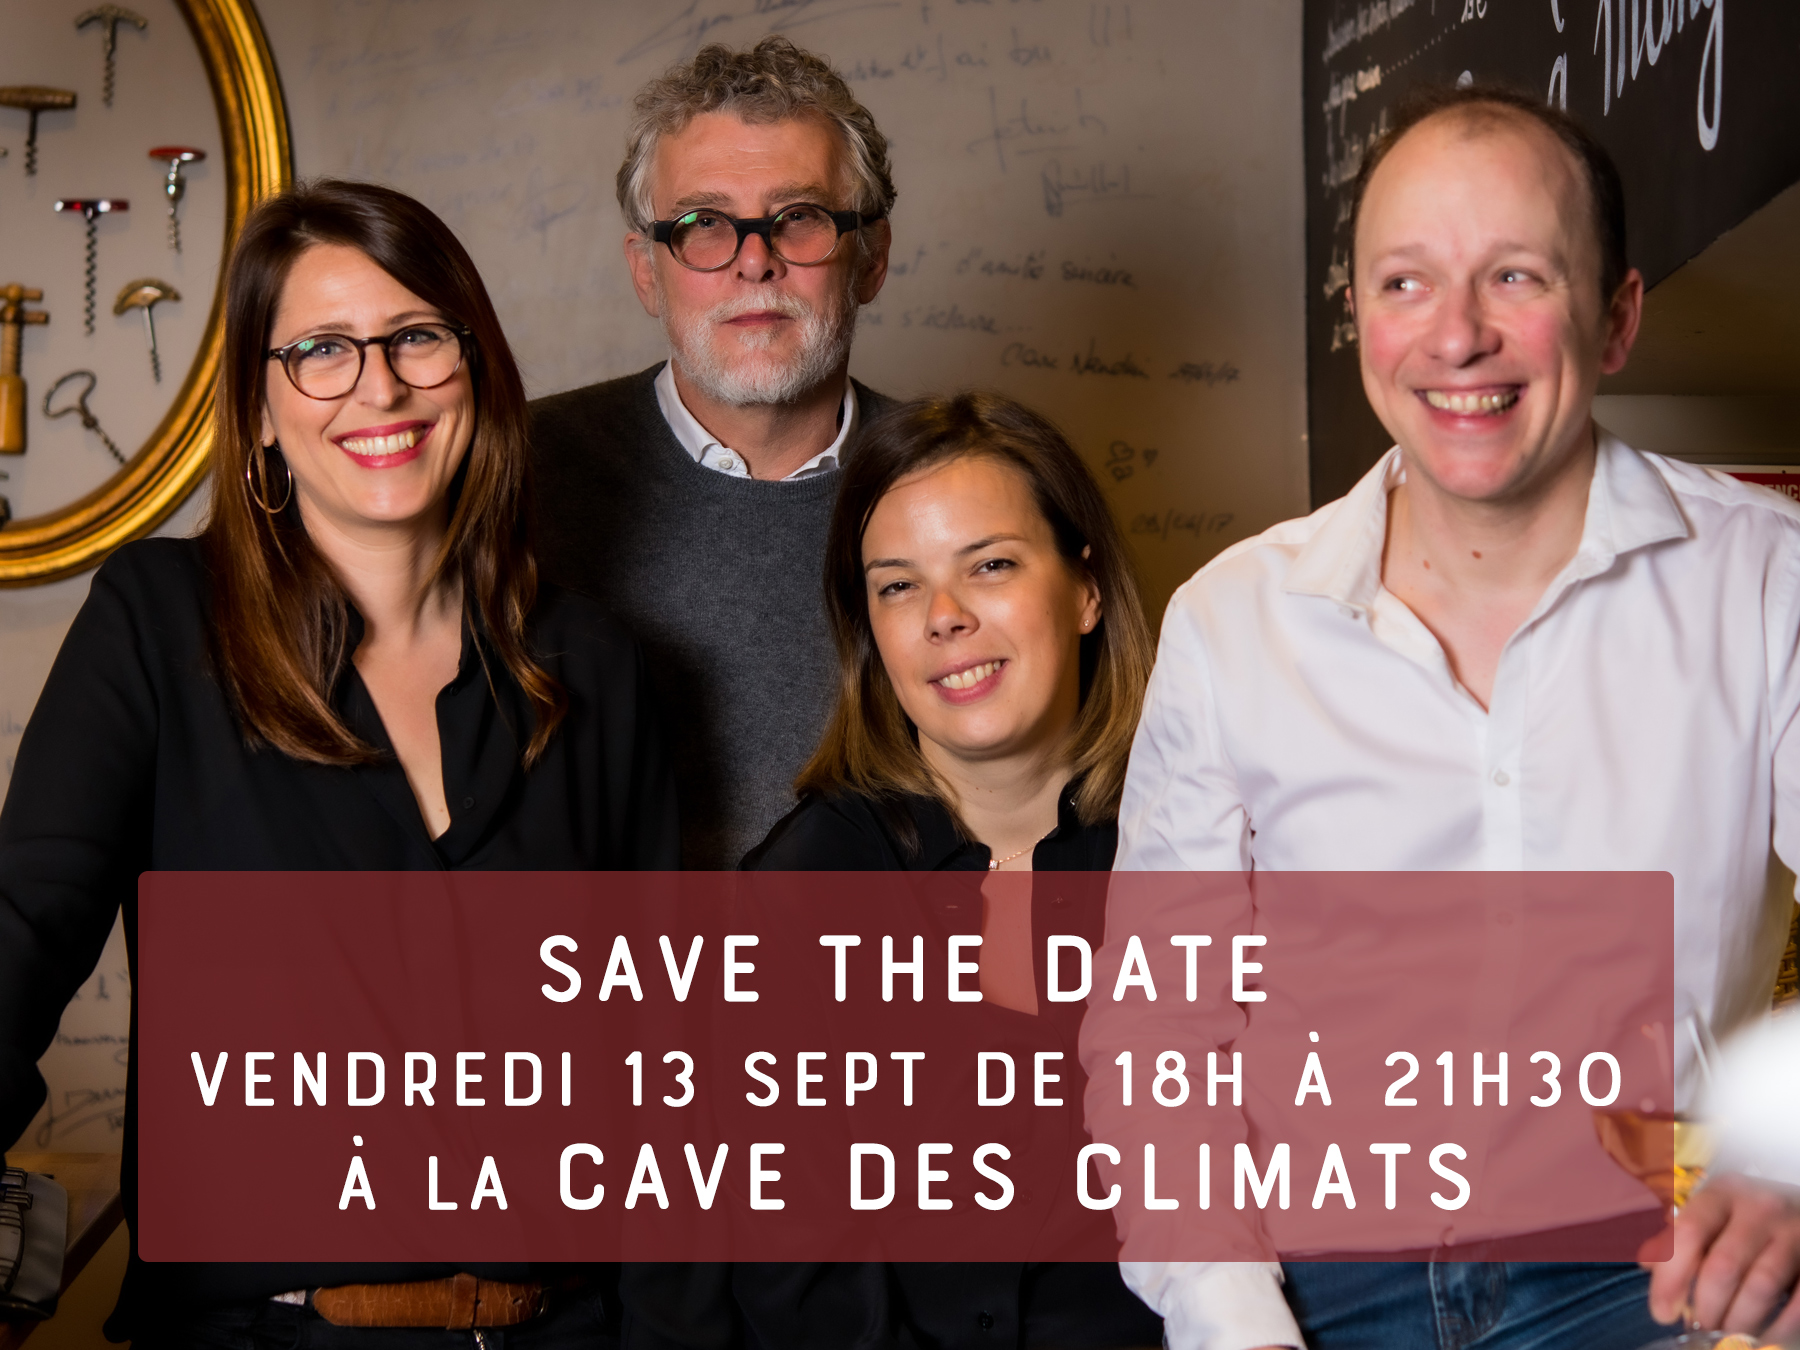 Image-Save-the-Date.jpg